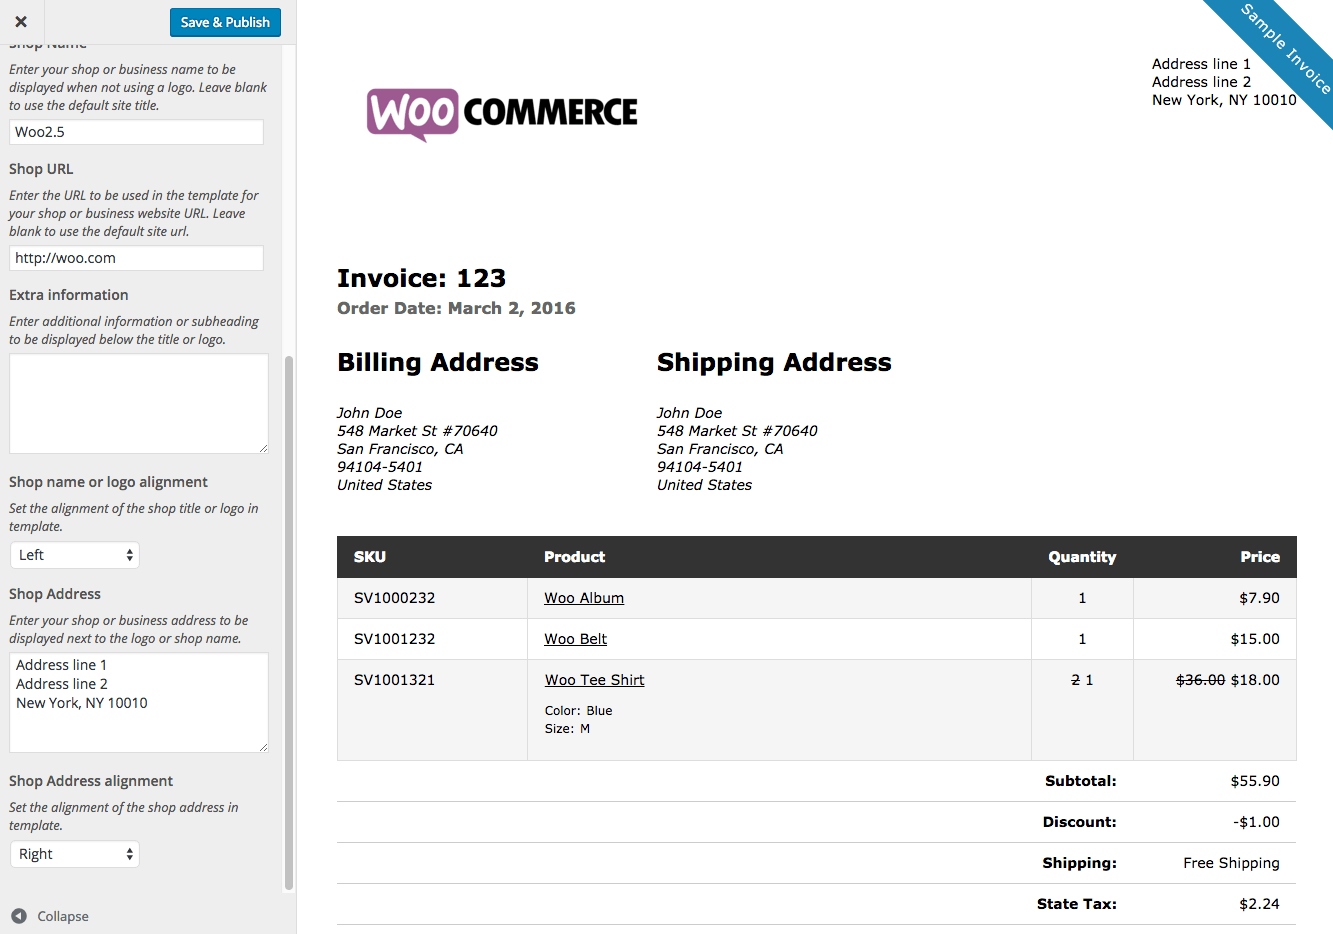 Usdgus  Terrific Print Invoices Amp Packing Lists  Woocommerce With Remarkable Woocommerce Print Invoices  Packing Lists Customizer With Amazing Sample Invoice For Hours Worked Also Net Amount On An Invoice In Addition Invoice Maker Online Free And Commercial Invoice Customs As Well As Where To Find Car Invoice Price Additionally Hmrc Vat Invoice From Woocommercecom With Usdgus  Remarkable Print Invoices Amp Packing Lists  Woocommerce With Amazing Woocommerce Print Invoices  Packing Lists Customizer And Terrific Sample Invoice For Hours Worked Also Net Amount On An Invoice In Addition Invoice Maker Online Free From Woocommercecom